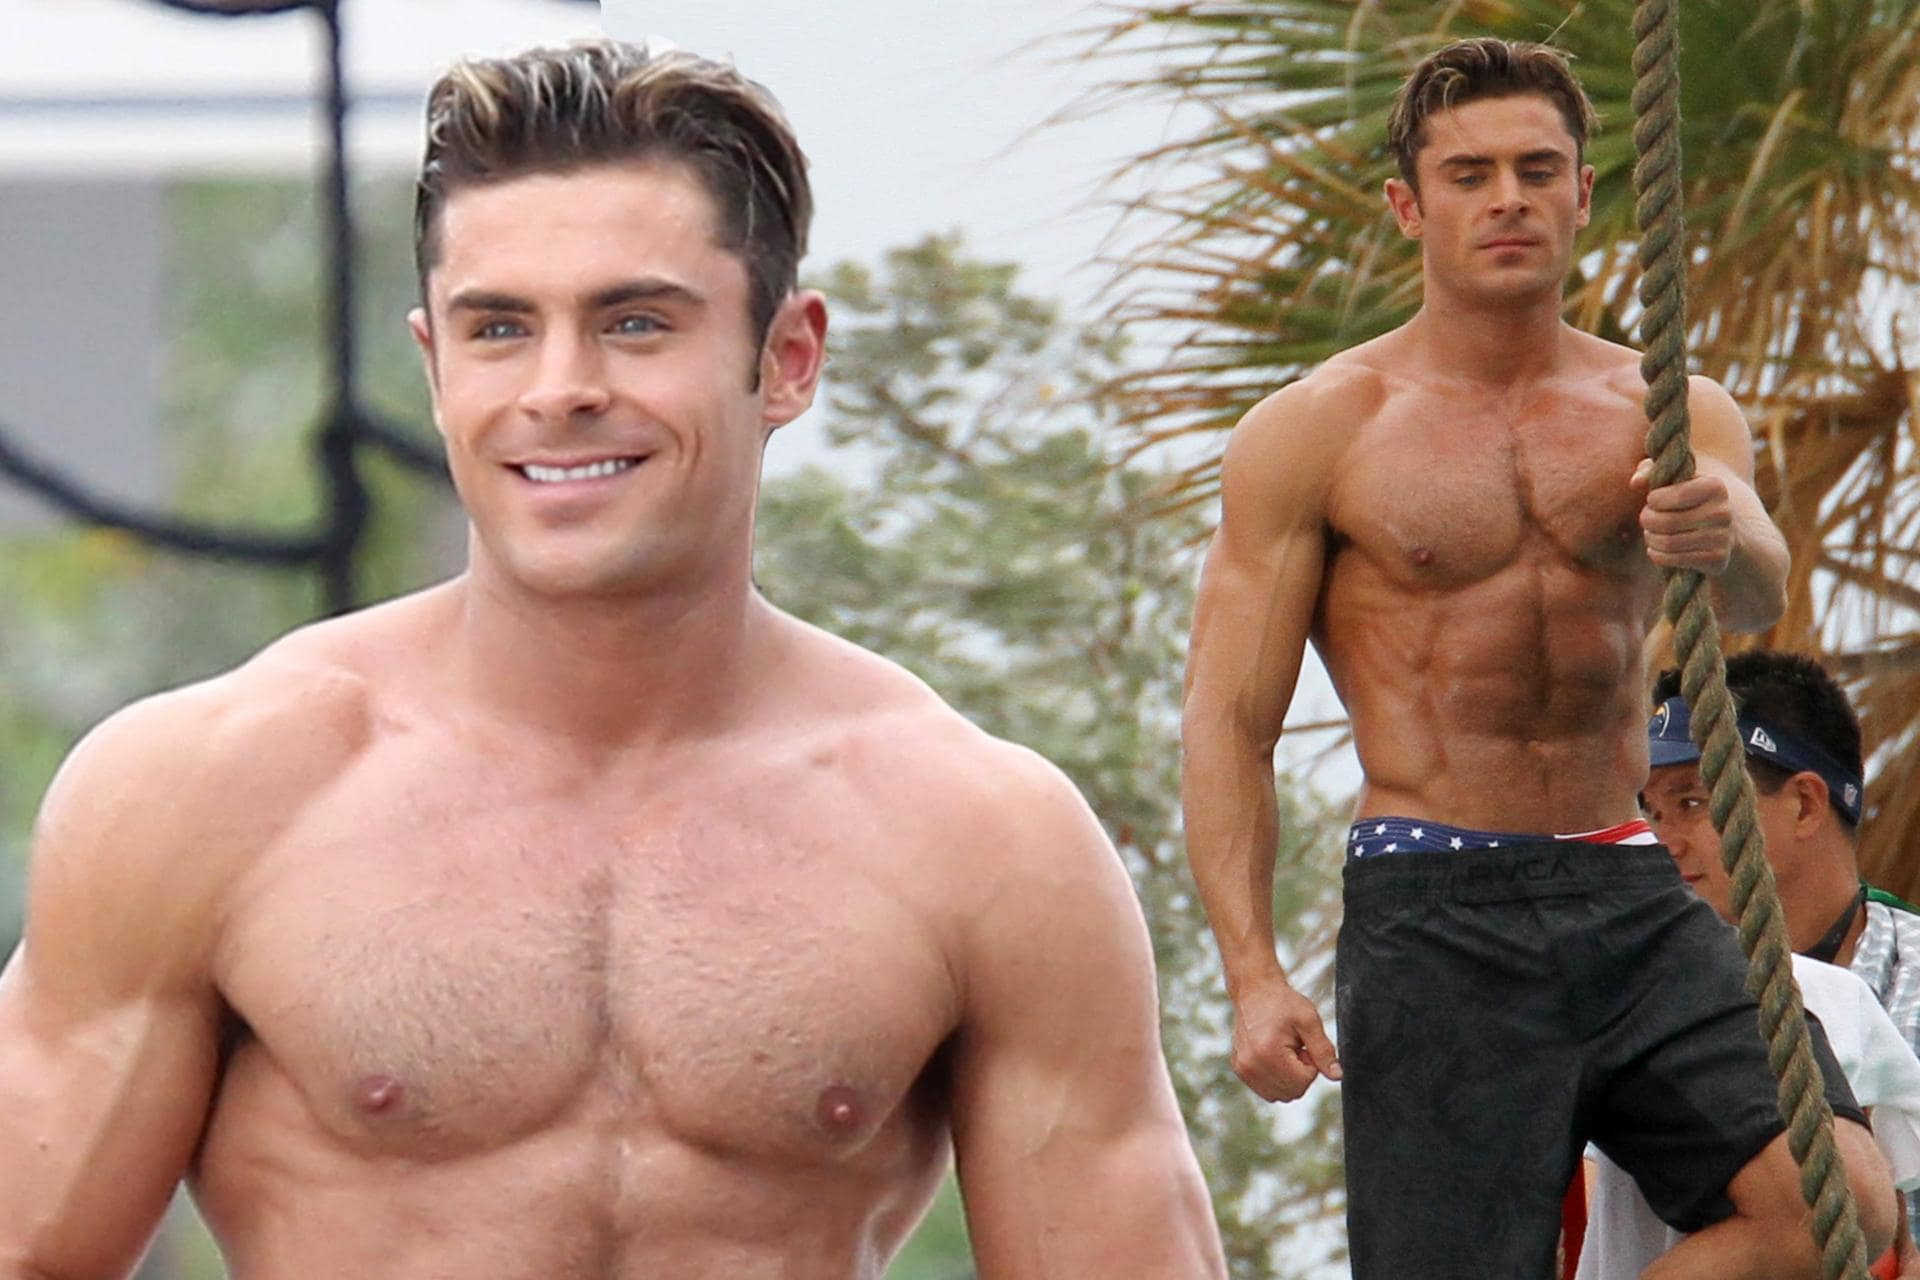 Try The Workout That Got Zac Efron Baywatch Ready